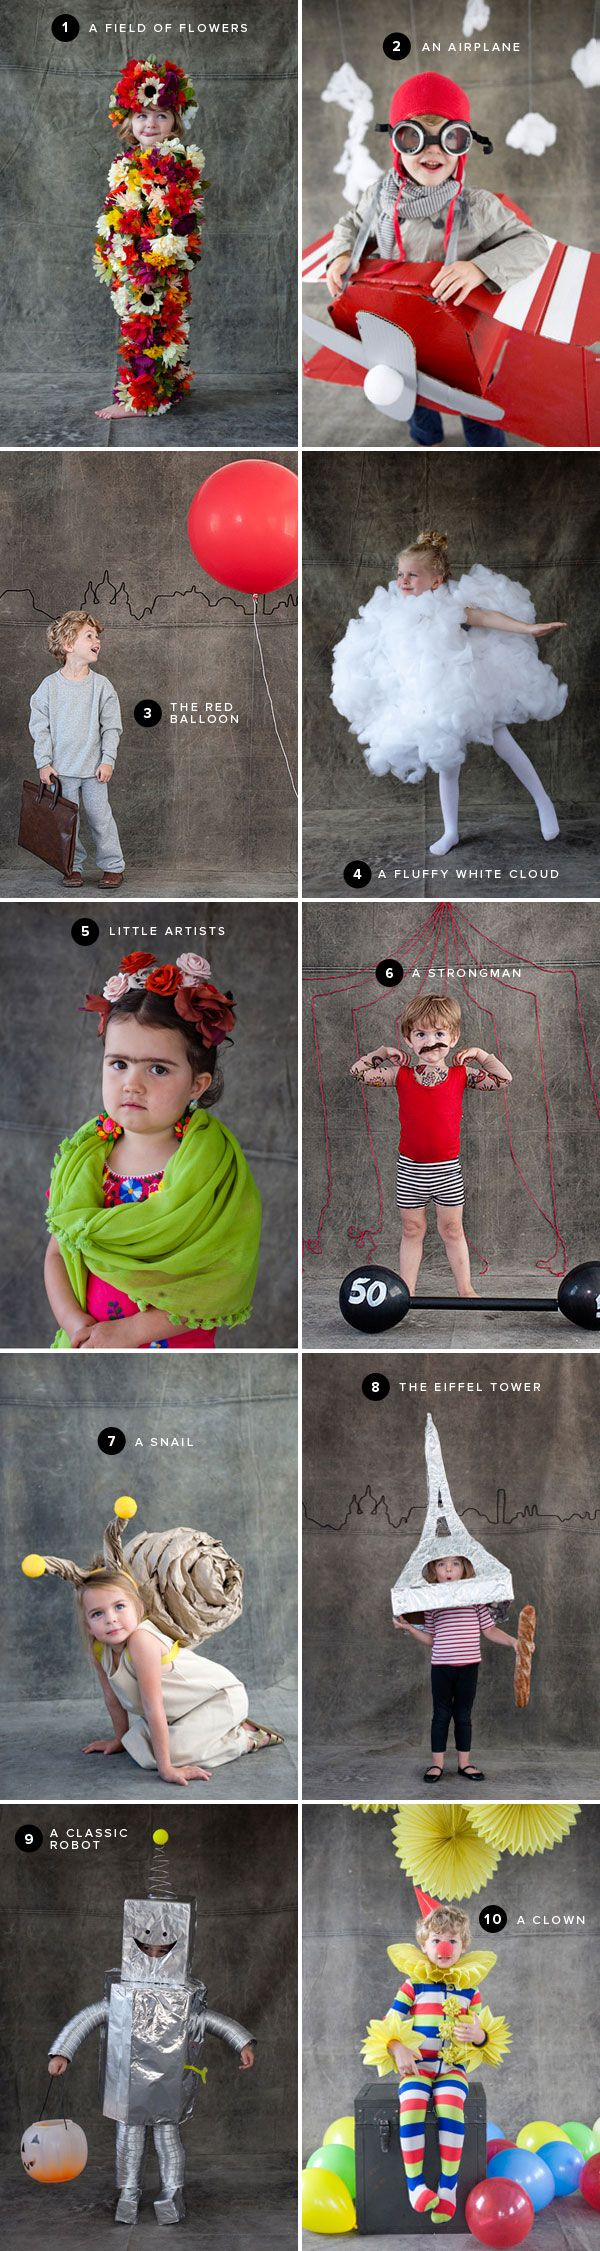 Kids' Halloween Costume Ideas | Oh Happy Day! #Halloween